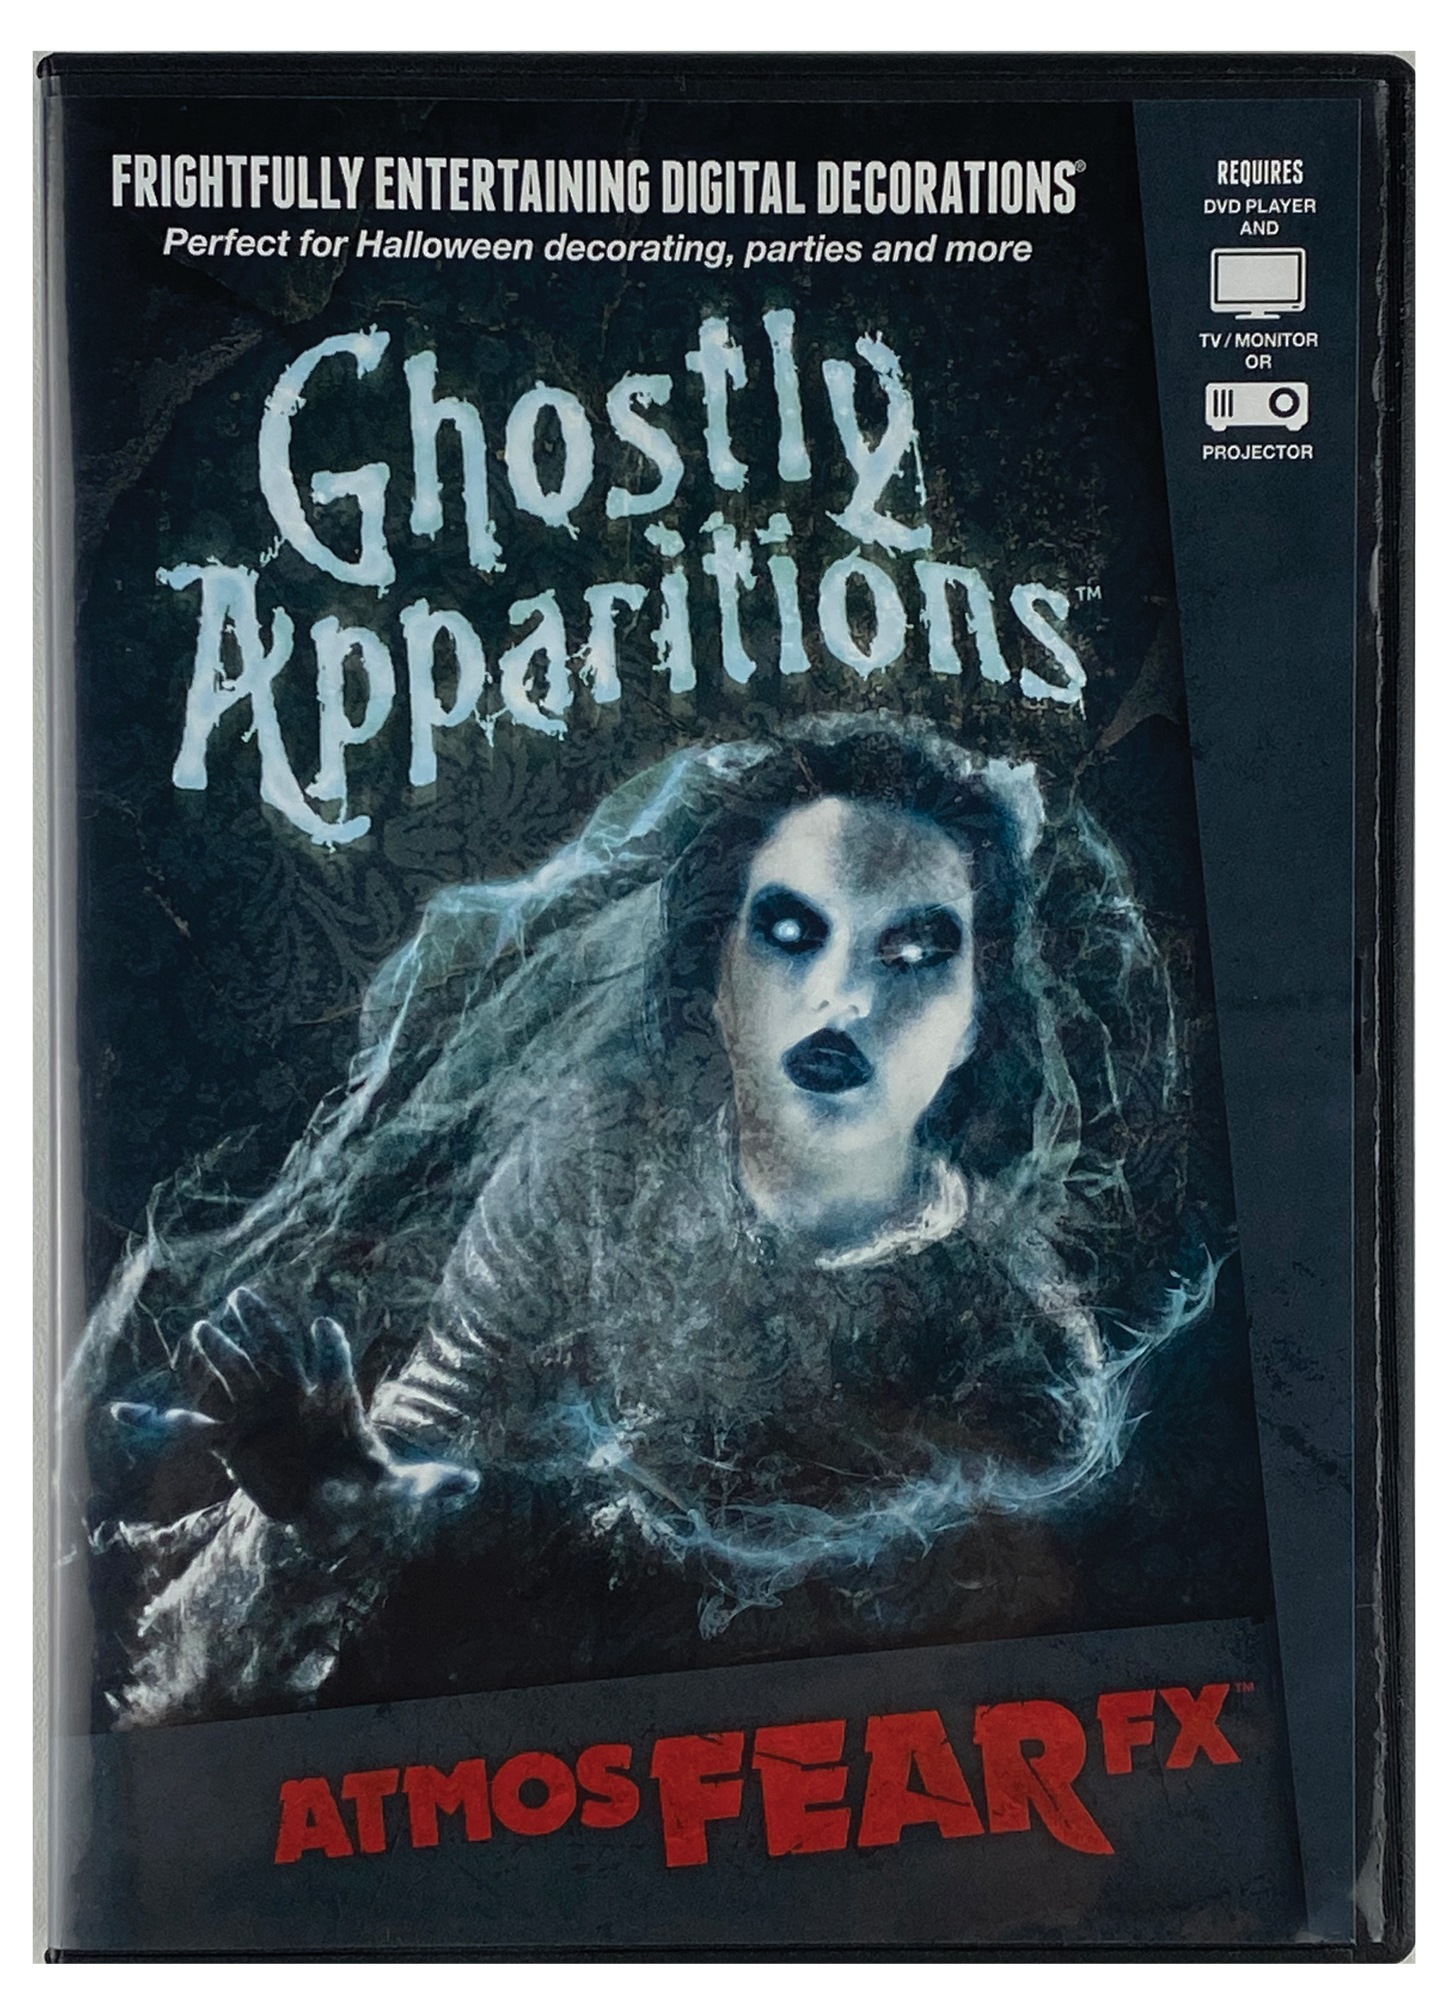 Featured Image for AtmosfearFX Ghostly Apparition